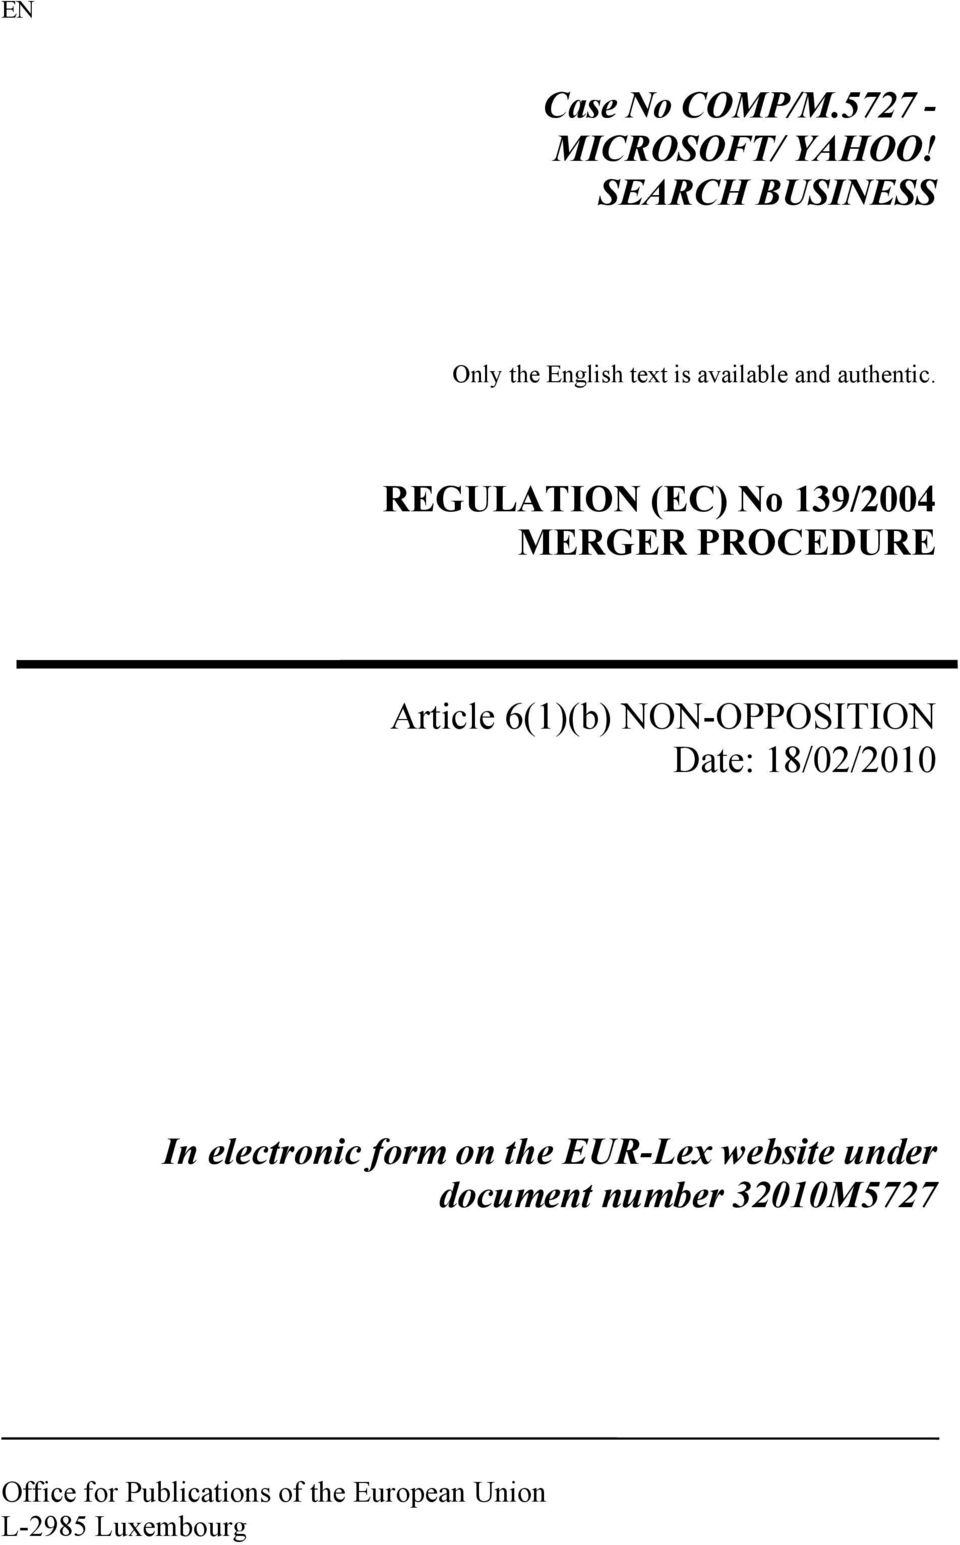 REGULATION (EC) No 139/2004 MERGER PROCEDURE Article 6(1)(b) NON-OPPOSITION Date: